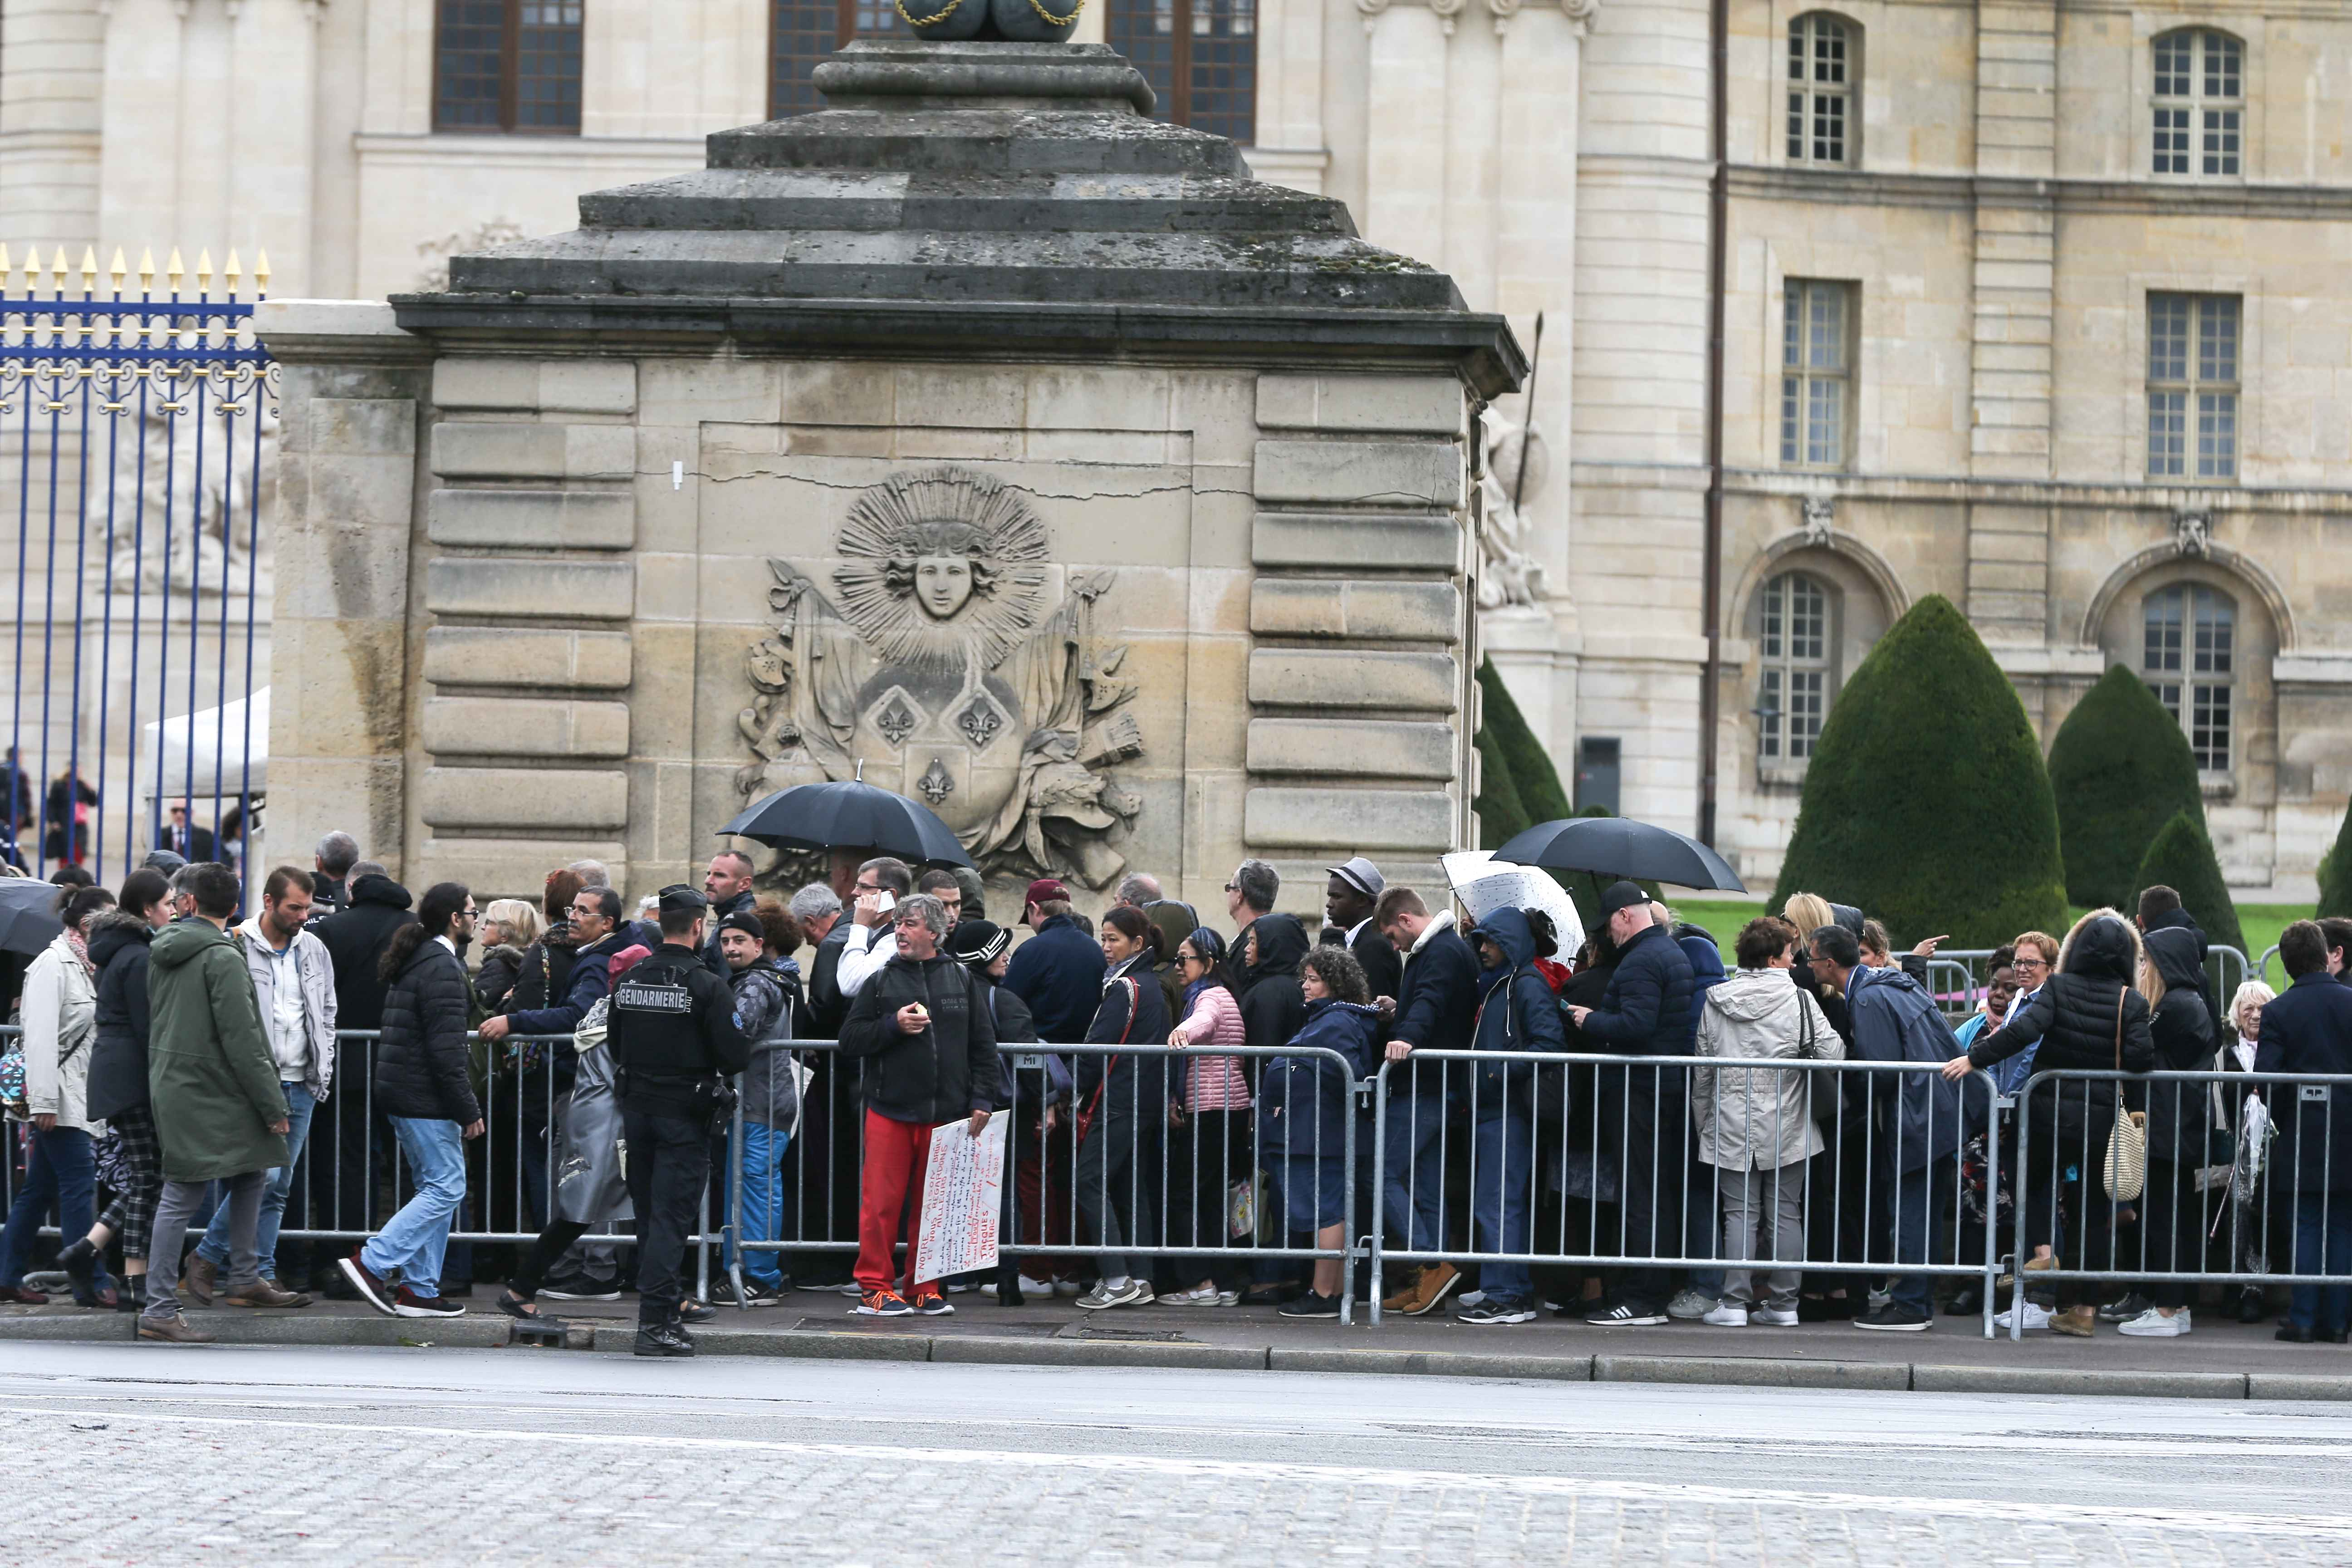 People wait to attend a public ceremony in homage to former French President Jacques Chirac outside the Saint-Louis-des-Invalides Cathedral in Paris on September 29, 2019. Jacques Chirac died on September 26 at the age of 86 after a long battle with deteri